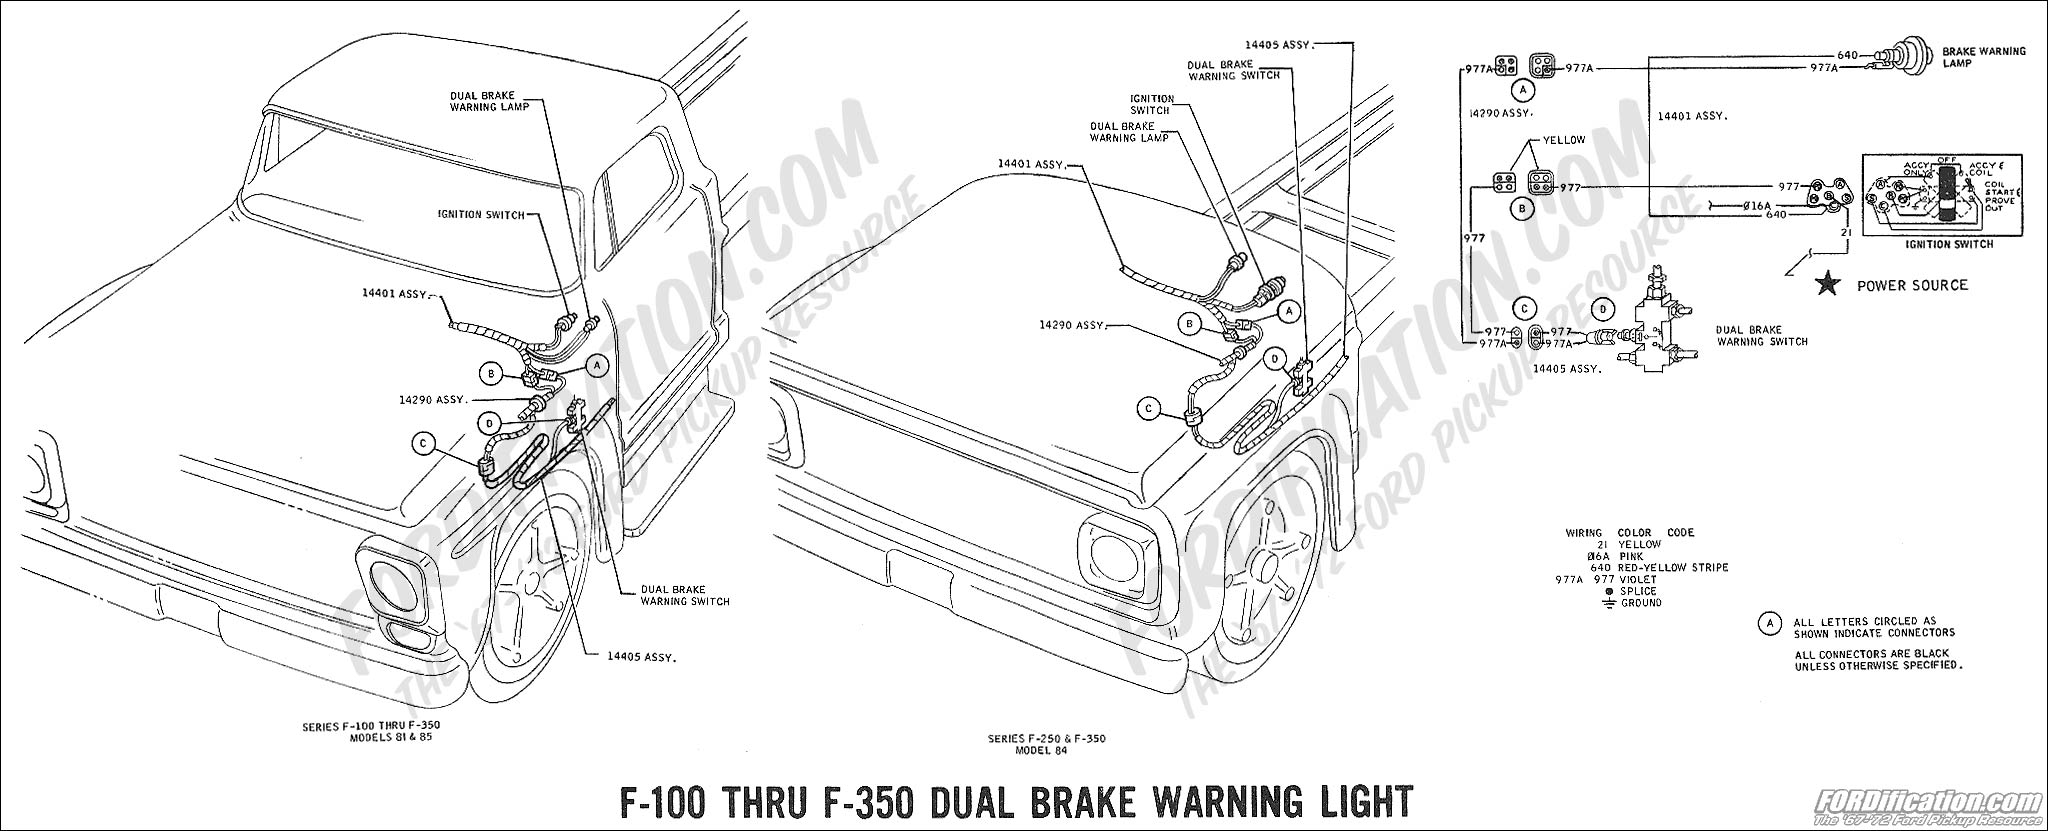 tail light wiring diagram for samurai